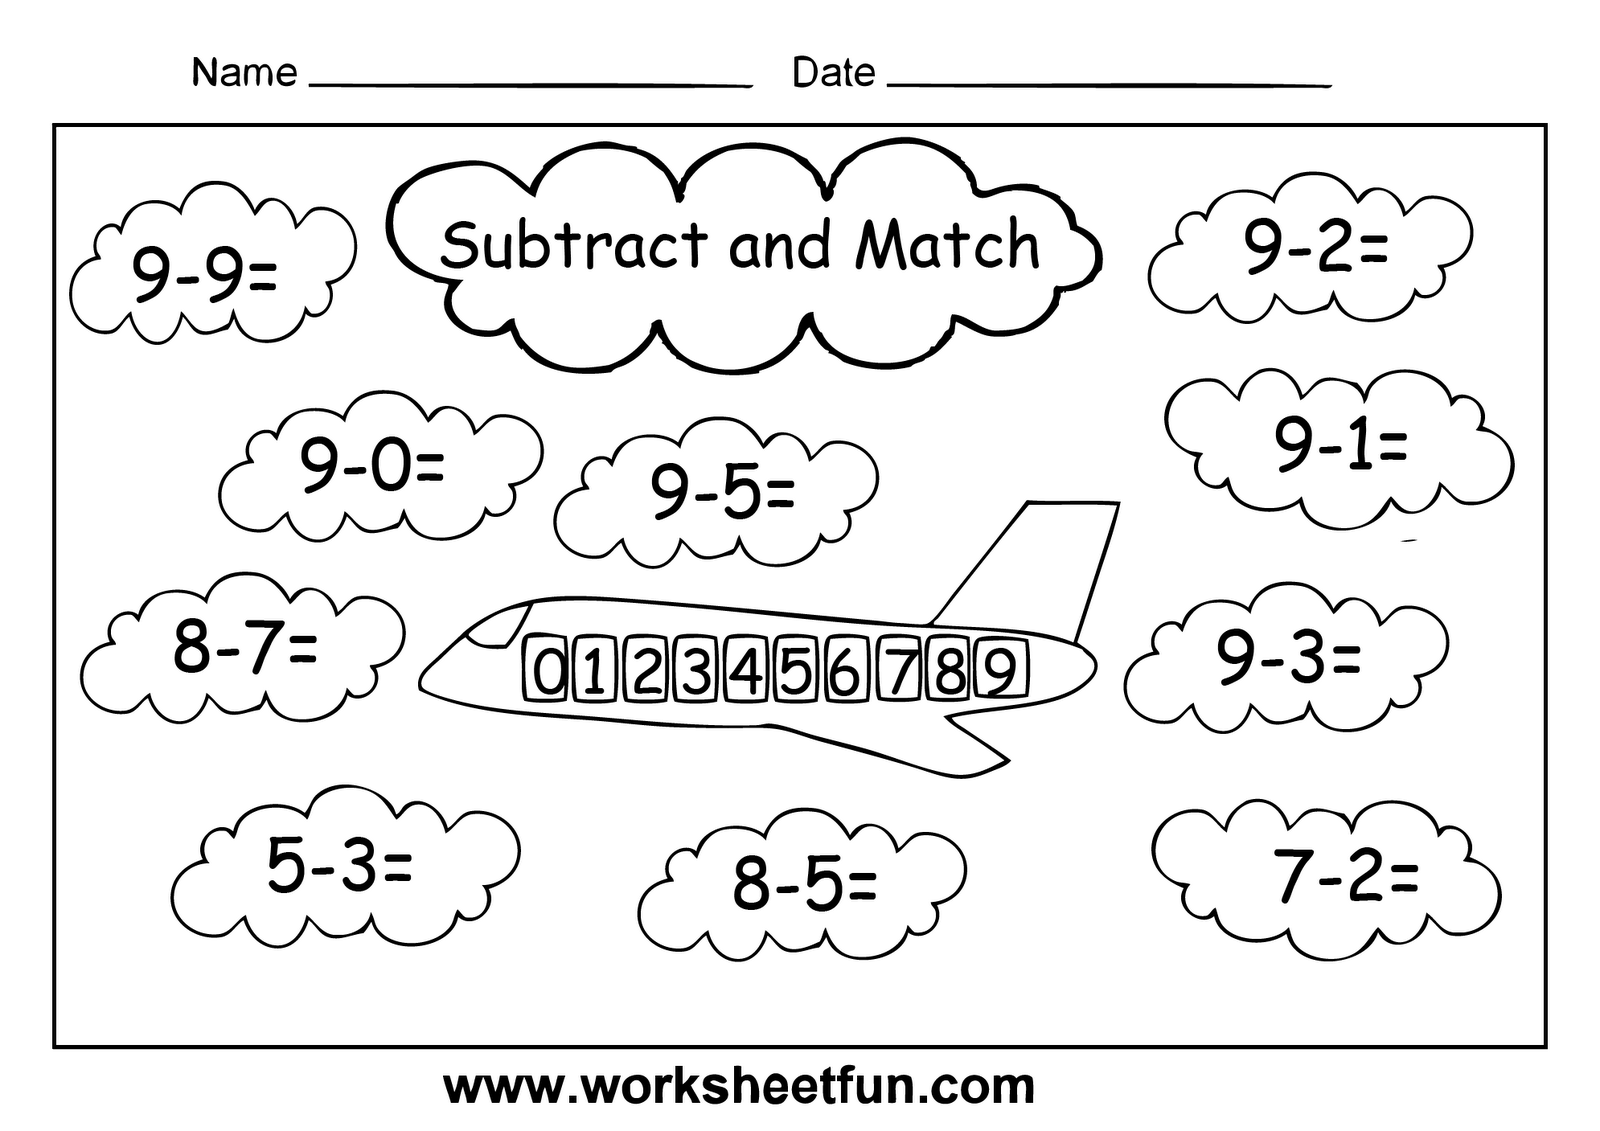 math worksheet : 1000 images about math on pinterest  saxon math worksheets and  : Simple Subtraction Worksheet